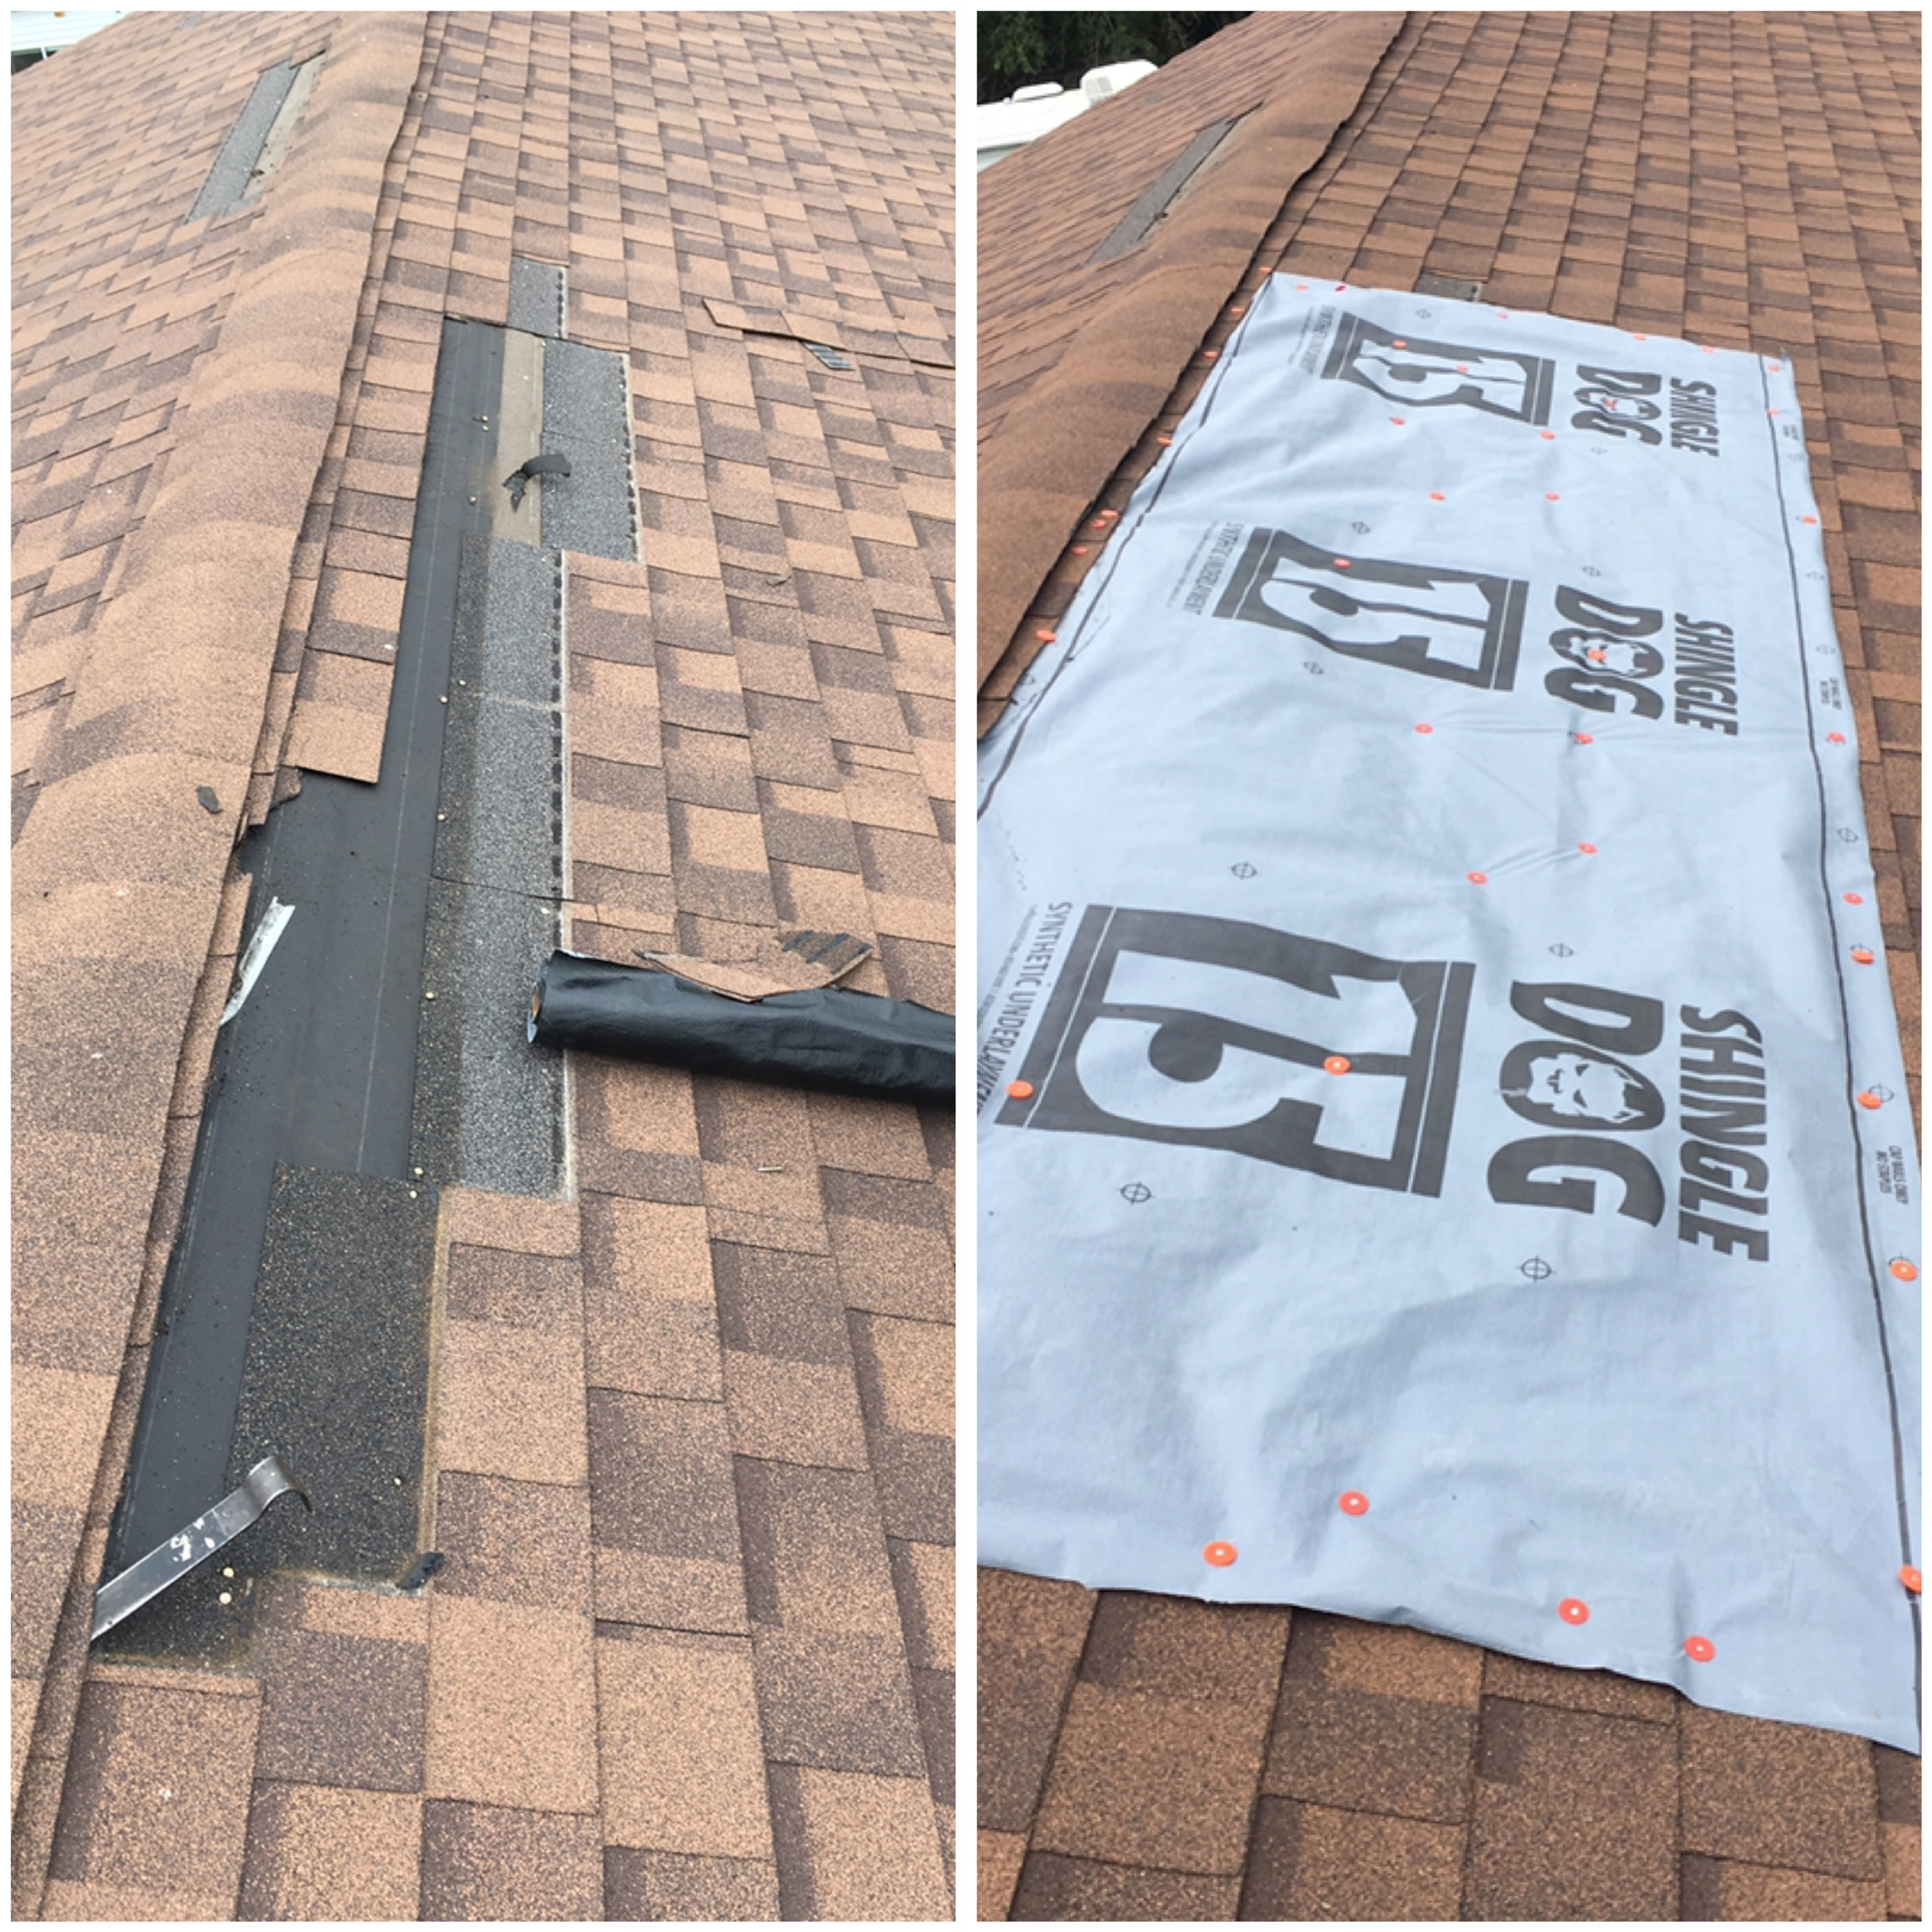 Roof Repairs and Patches